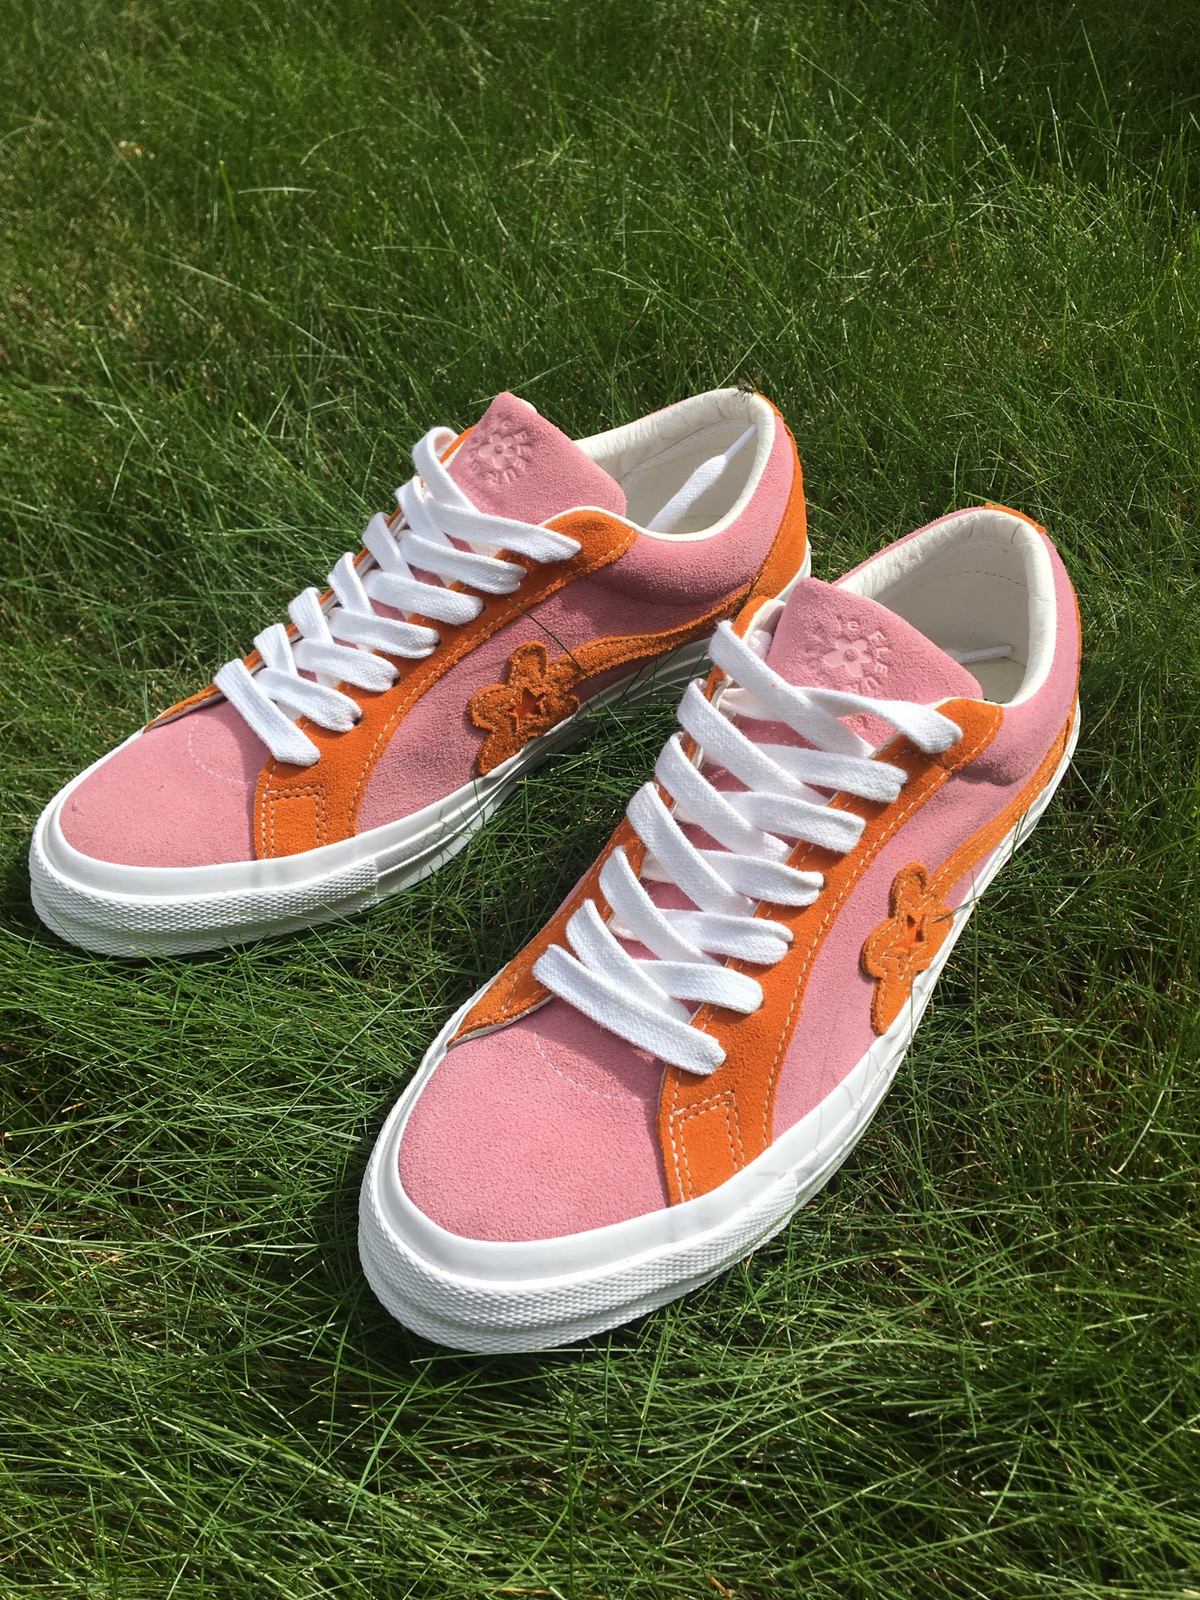 Converse Two Tone Pink And Orange Golf Le Fleur One Star Tyler The Creator Grailed